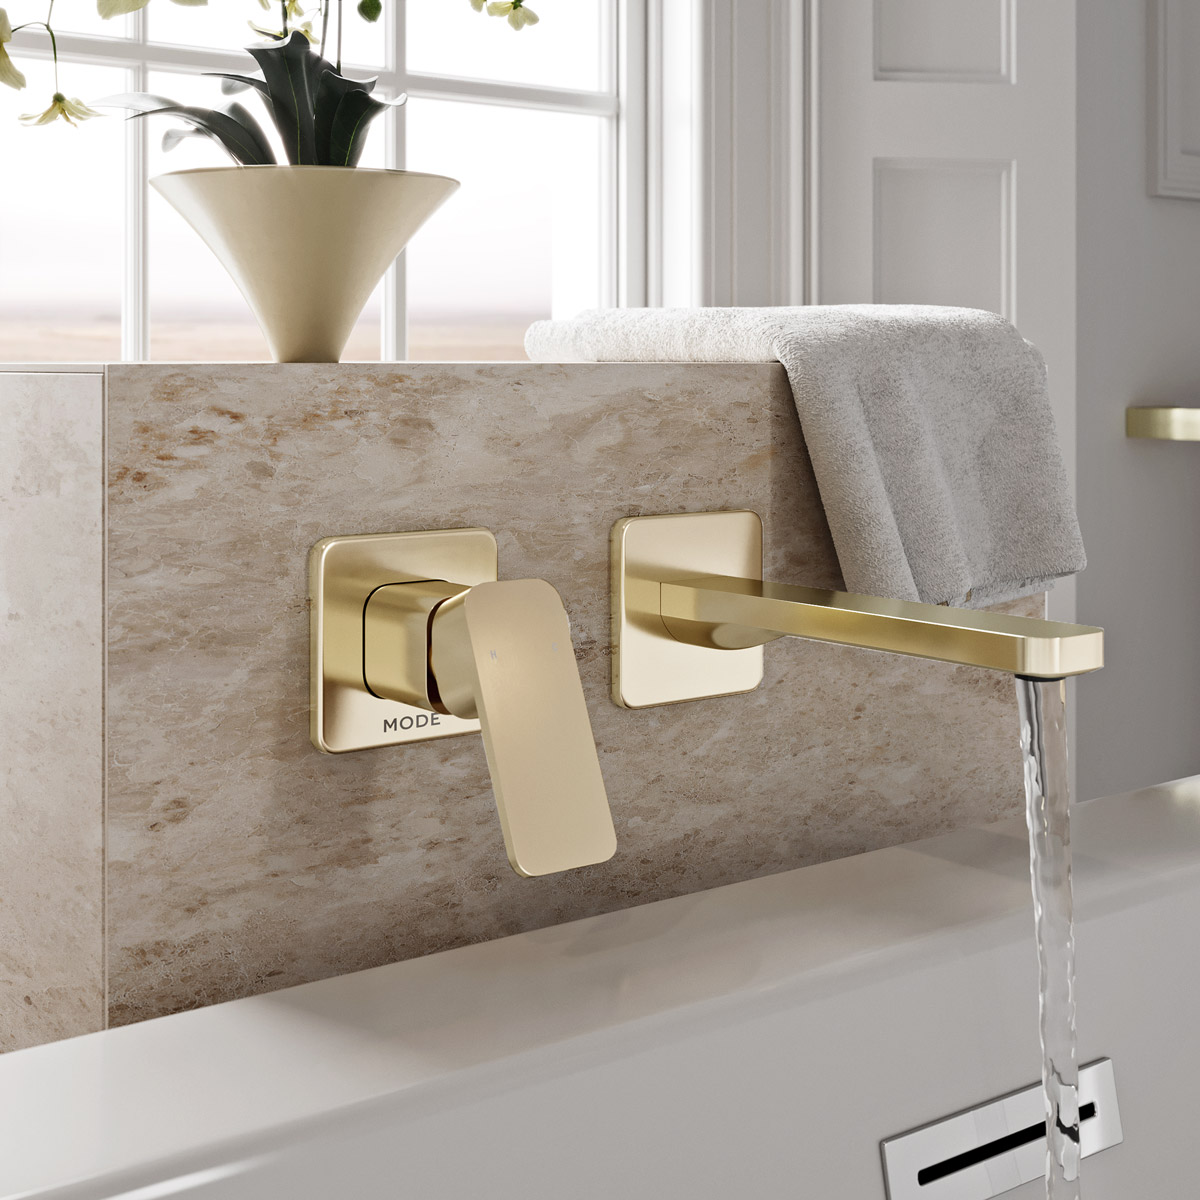 5 Bathroom Trend Ideas For 2019 - Gold Taps